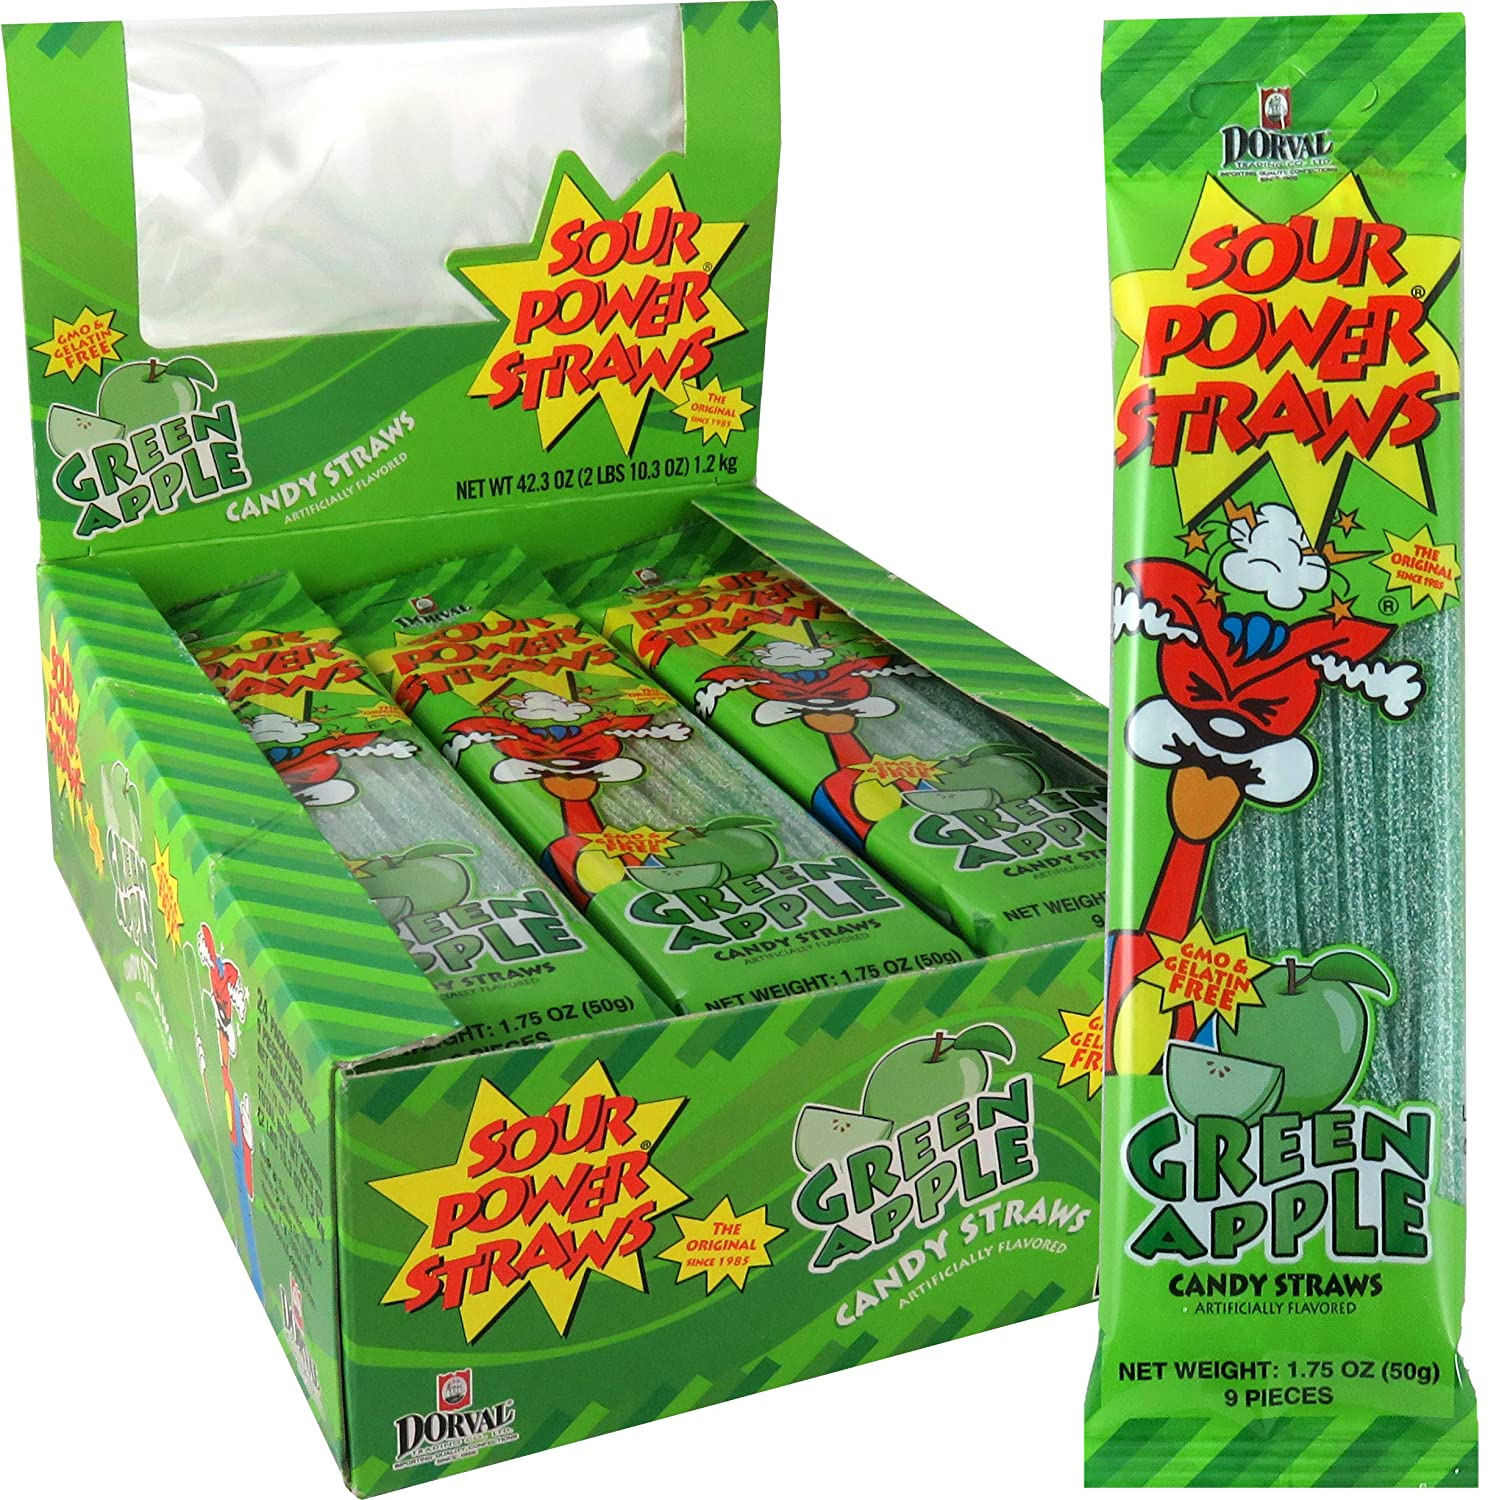 Sour Power Candy Straws, Green Apple, 24-Count, 1.75 Ounce (Pack of 24) (SOURP0W-4)